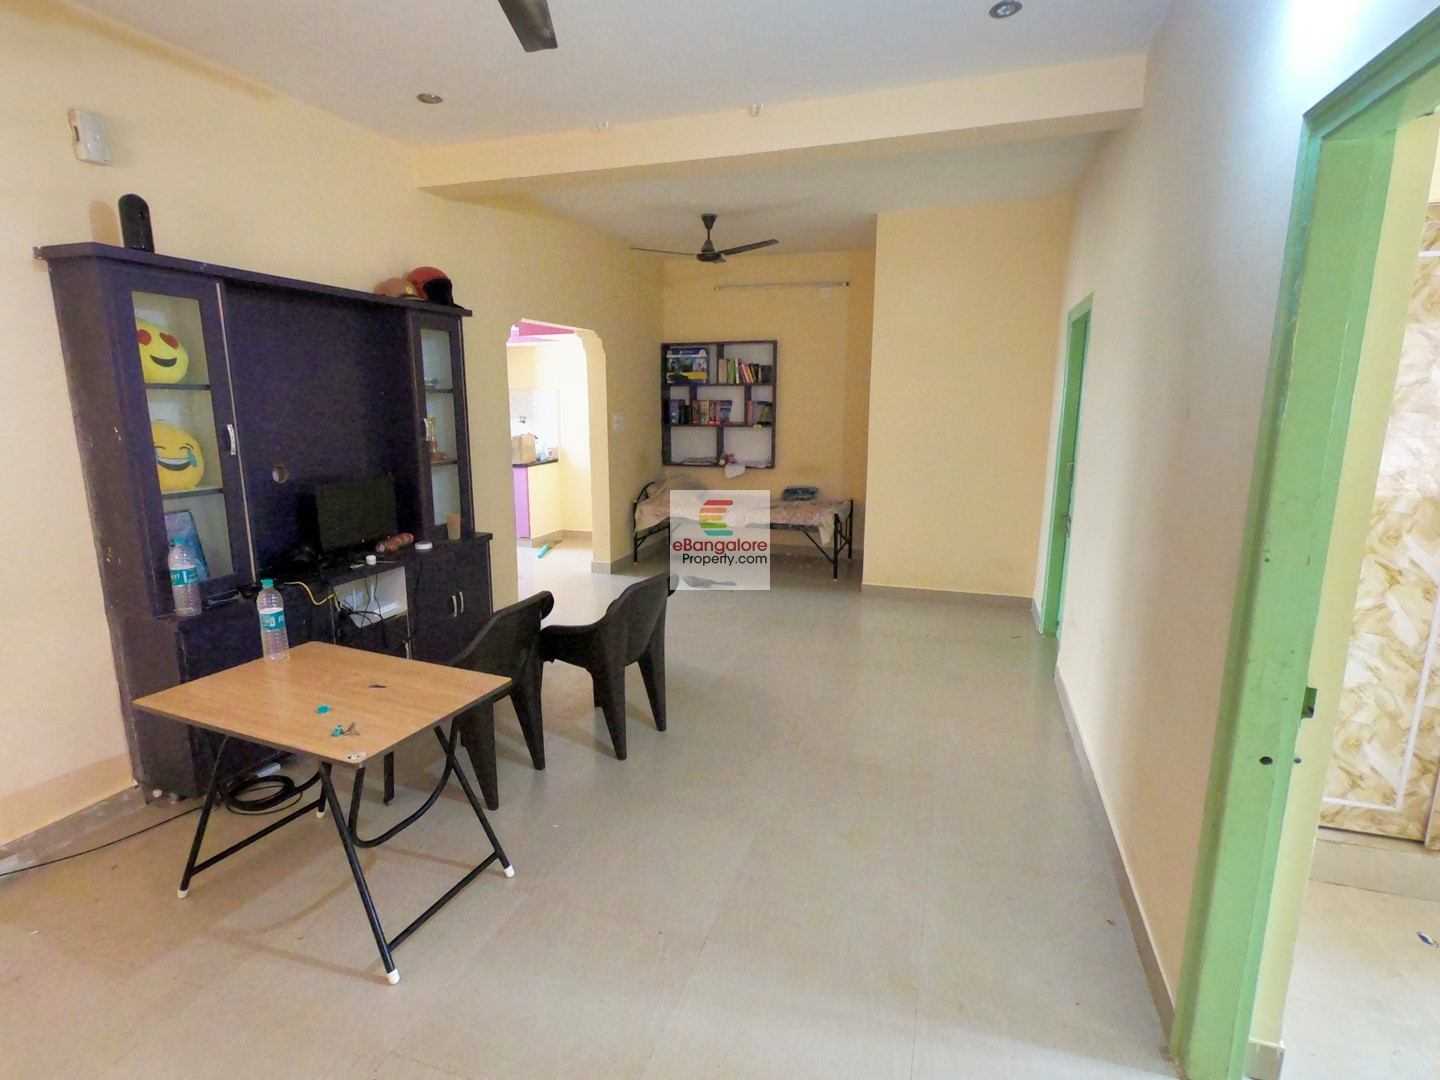 Electronic City 1 – 11 Unit Rental Income Building for Sale on 30×40 – Fetching 1.2 Lakh Rent